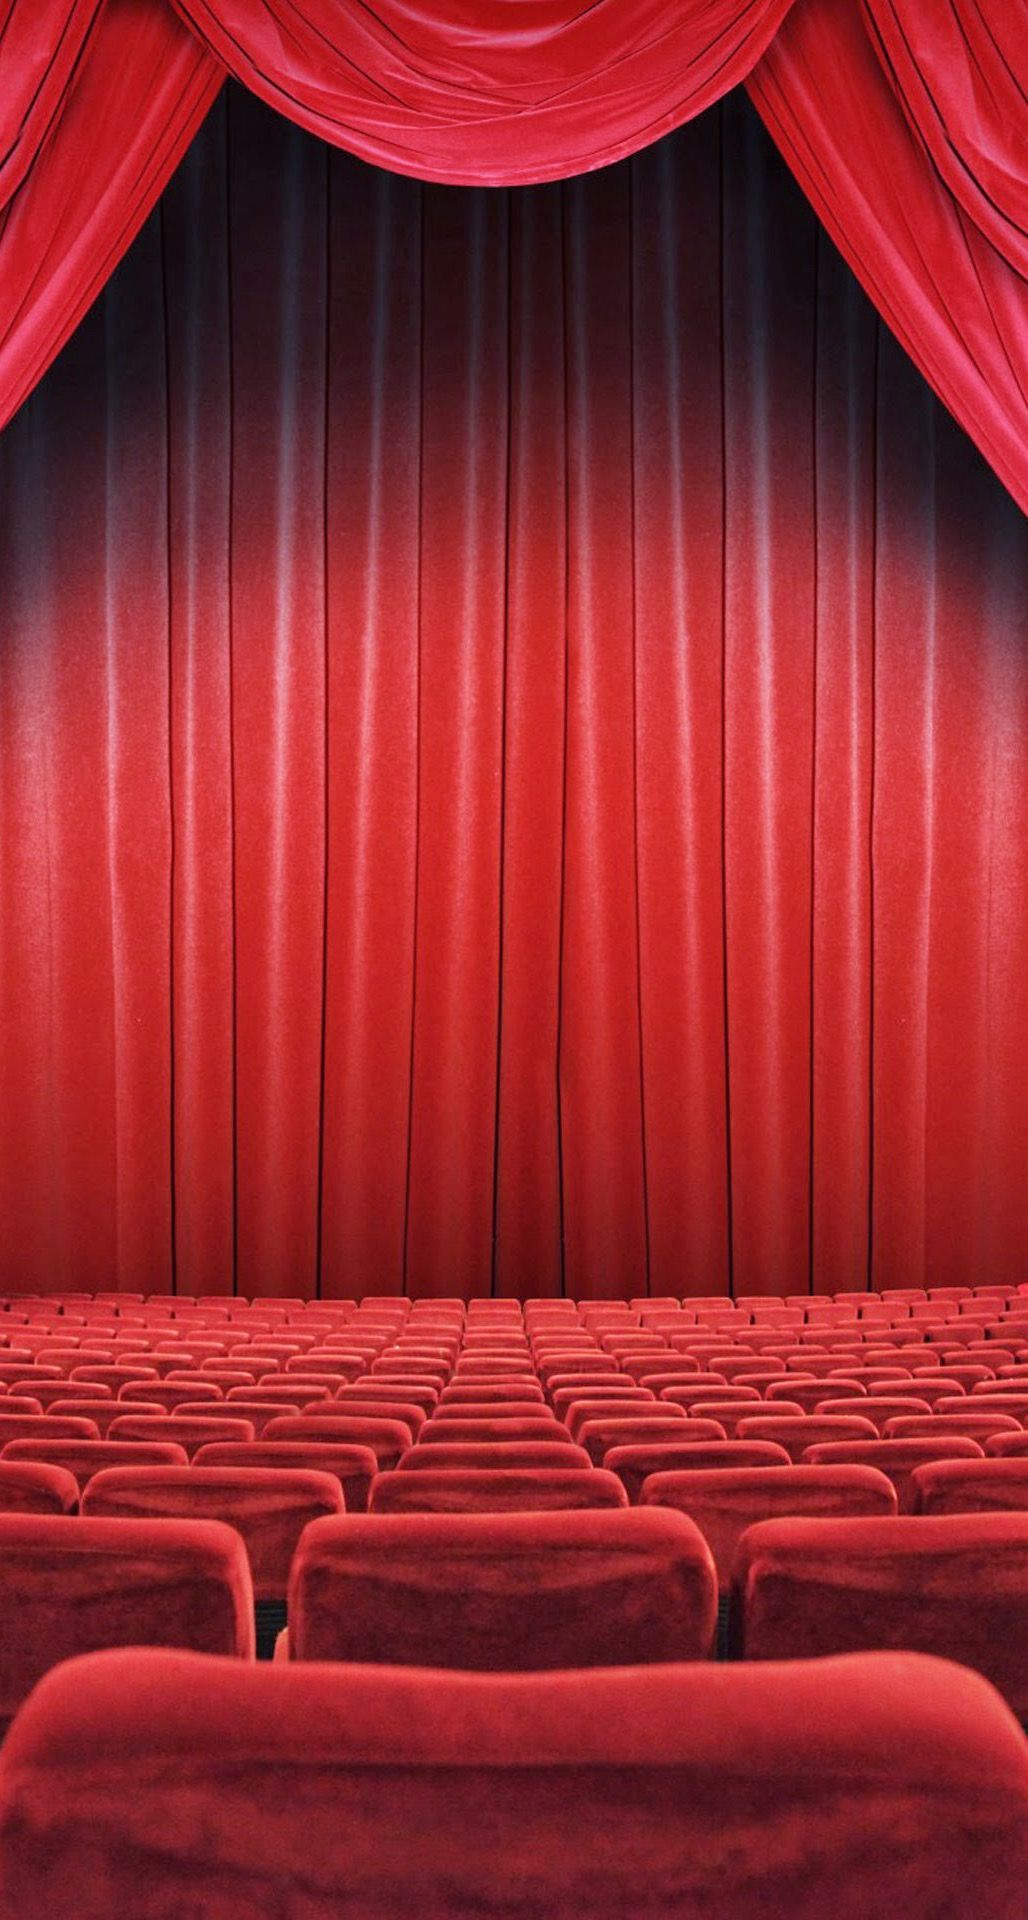 Theatre Wallpapers Top Free Theatre Backgrounds